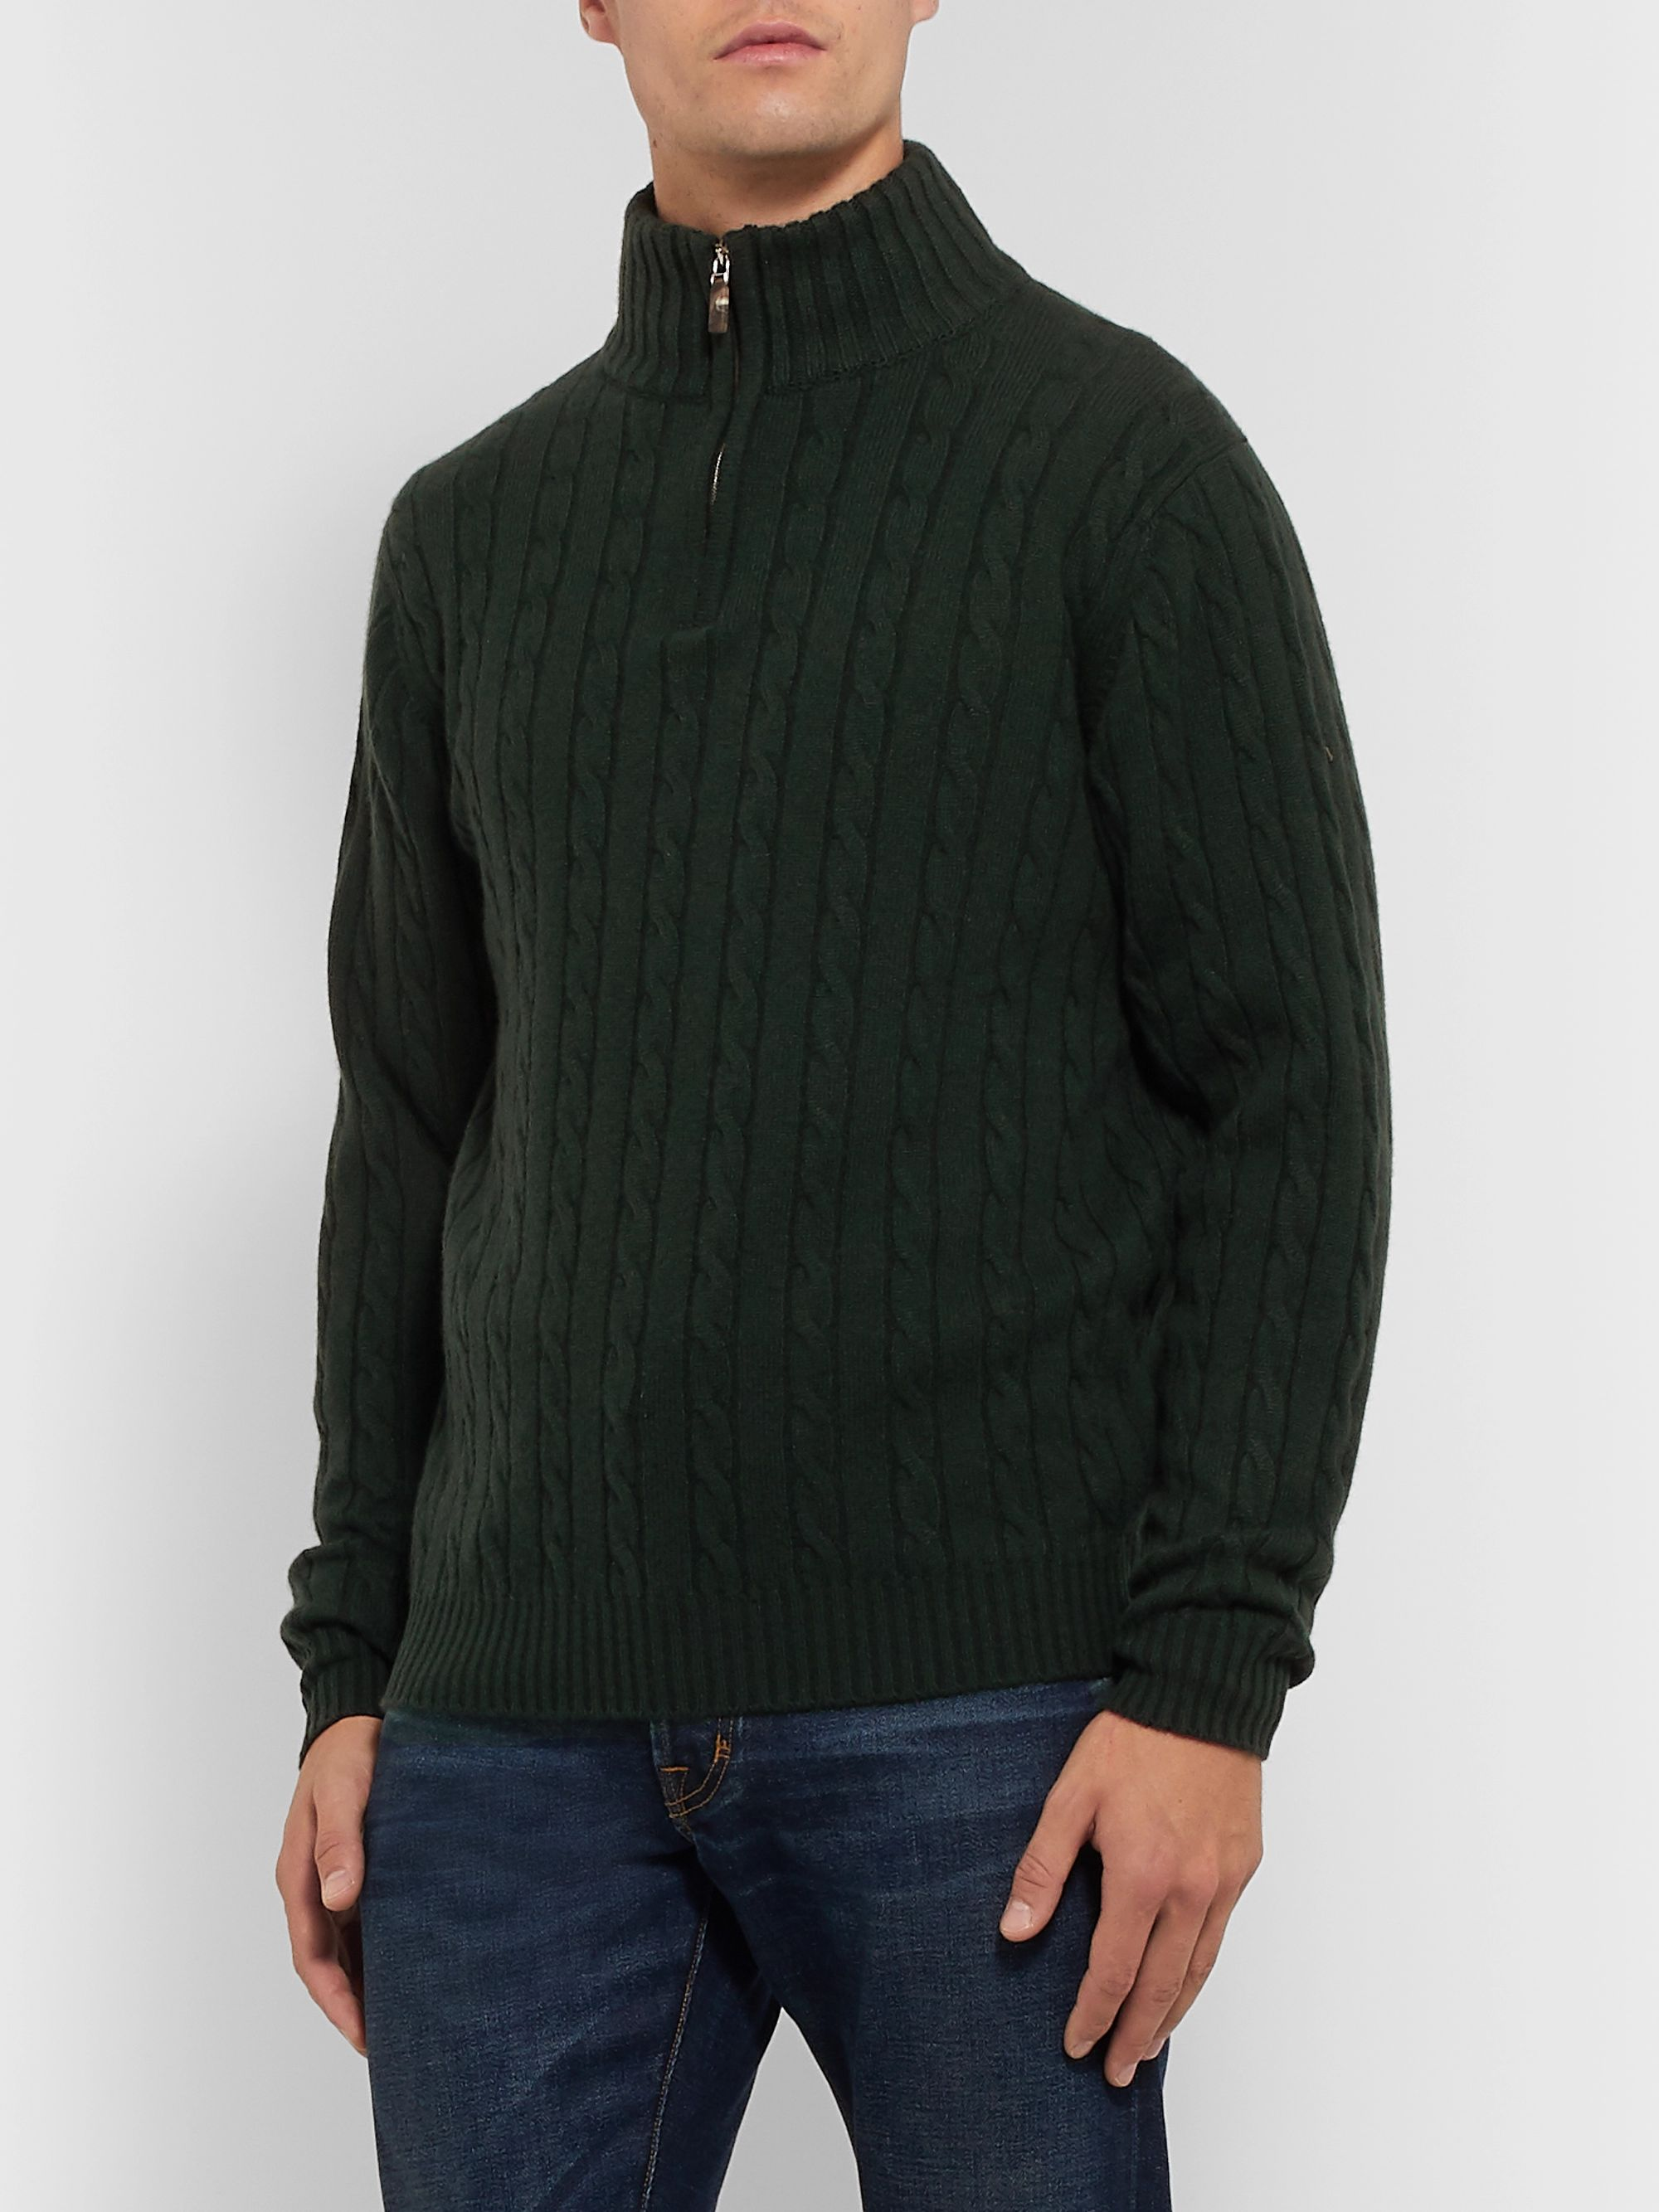 James Purdey & Sons Hammersmith Cable-Knit Cashmere Half-Zip Sweater